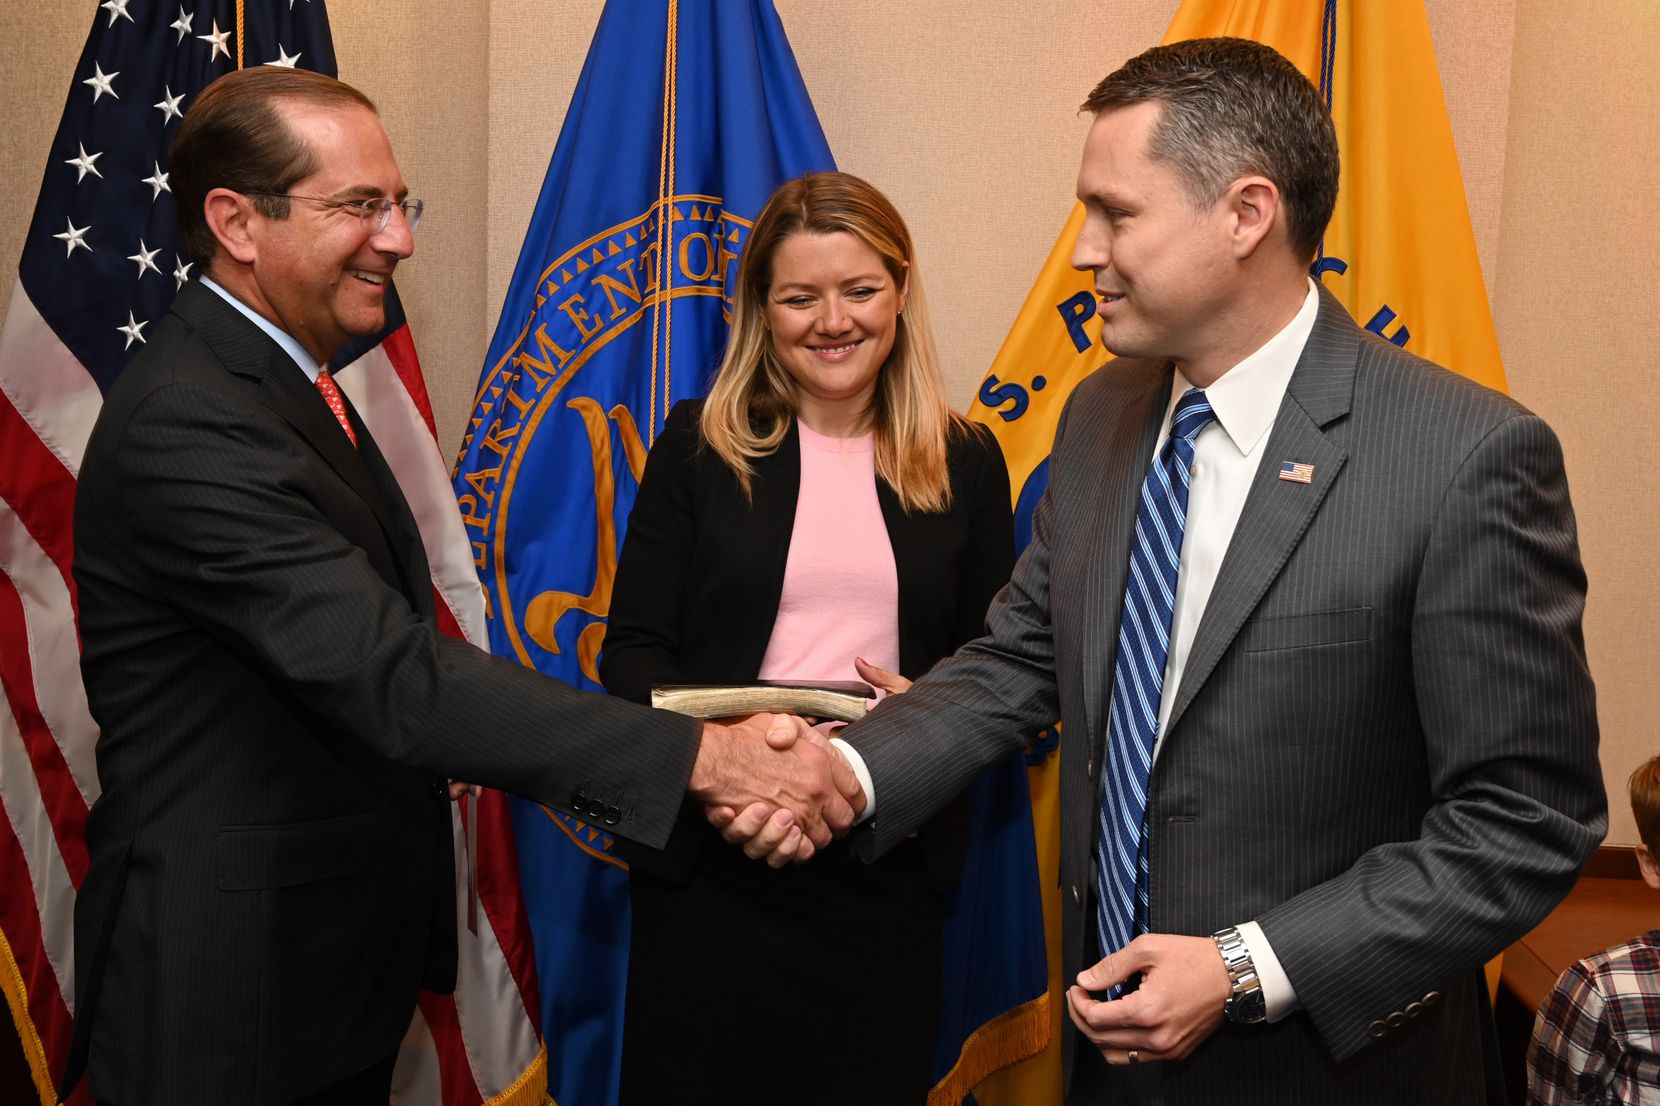 Alex Azar, left, U.S. Secretary of Health and Human Services, congratulates Brian Harrison as his wife, Tara Napier Harrison, looks on after Harrison's swearing-in on June 17, 2019, as chief of staff at the department. Photo by official HHS photographer Chris Smith.